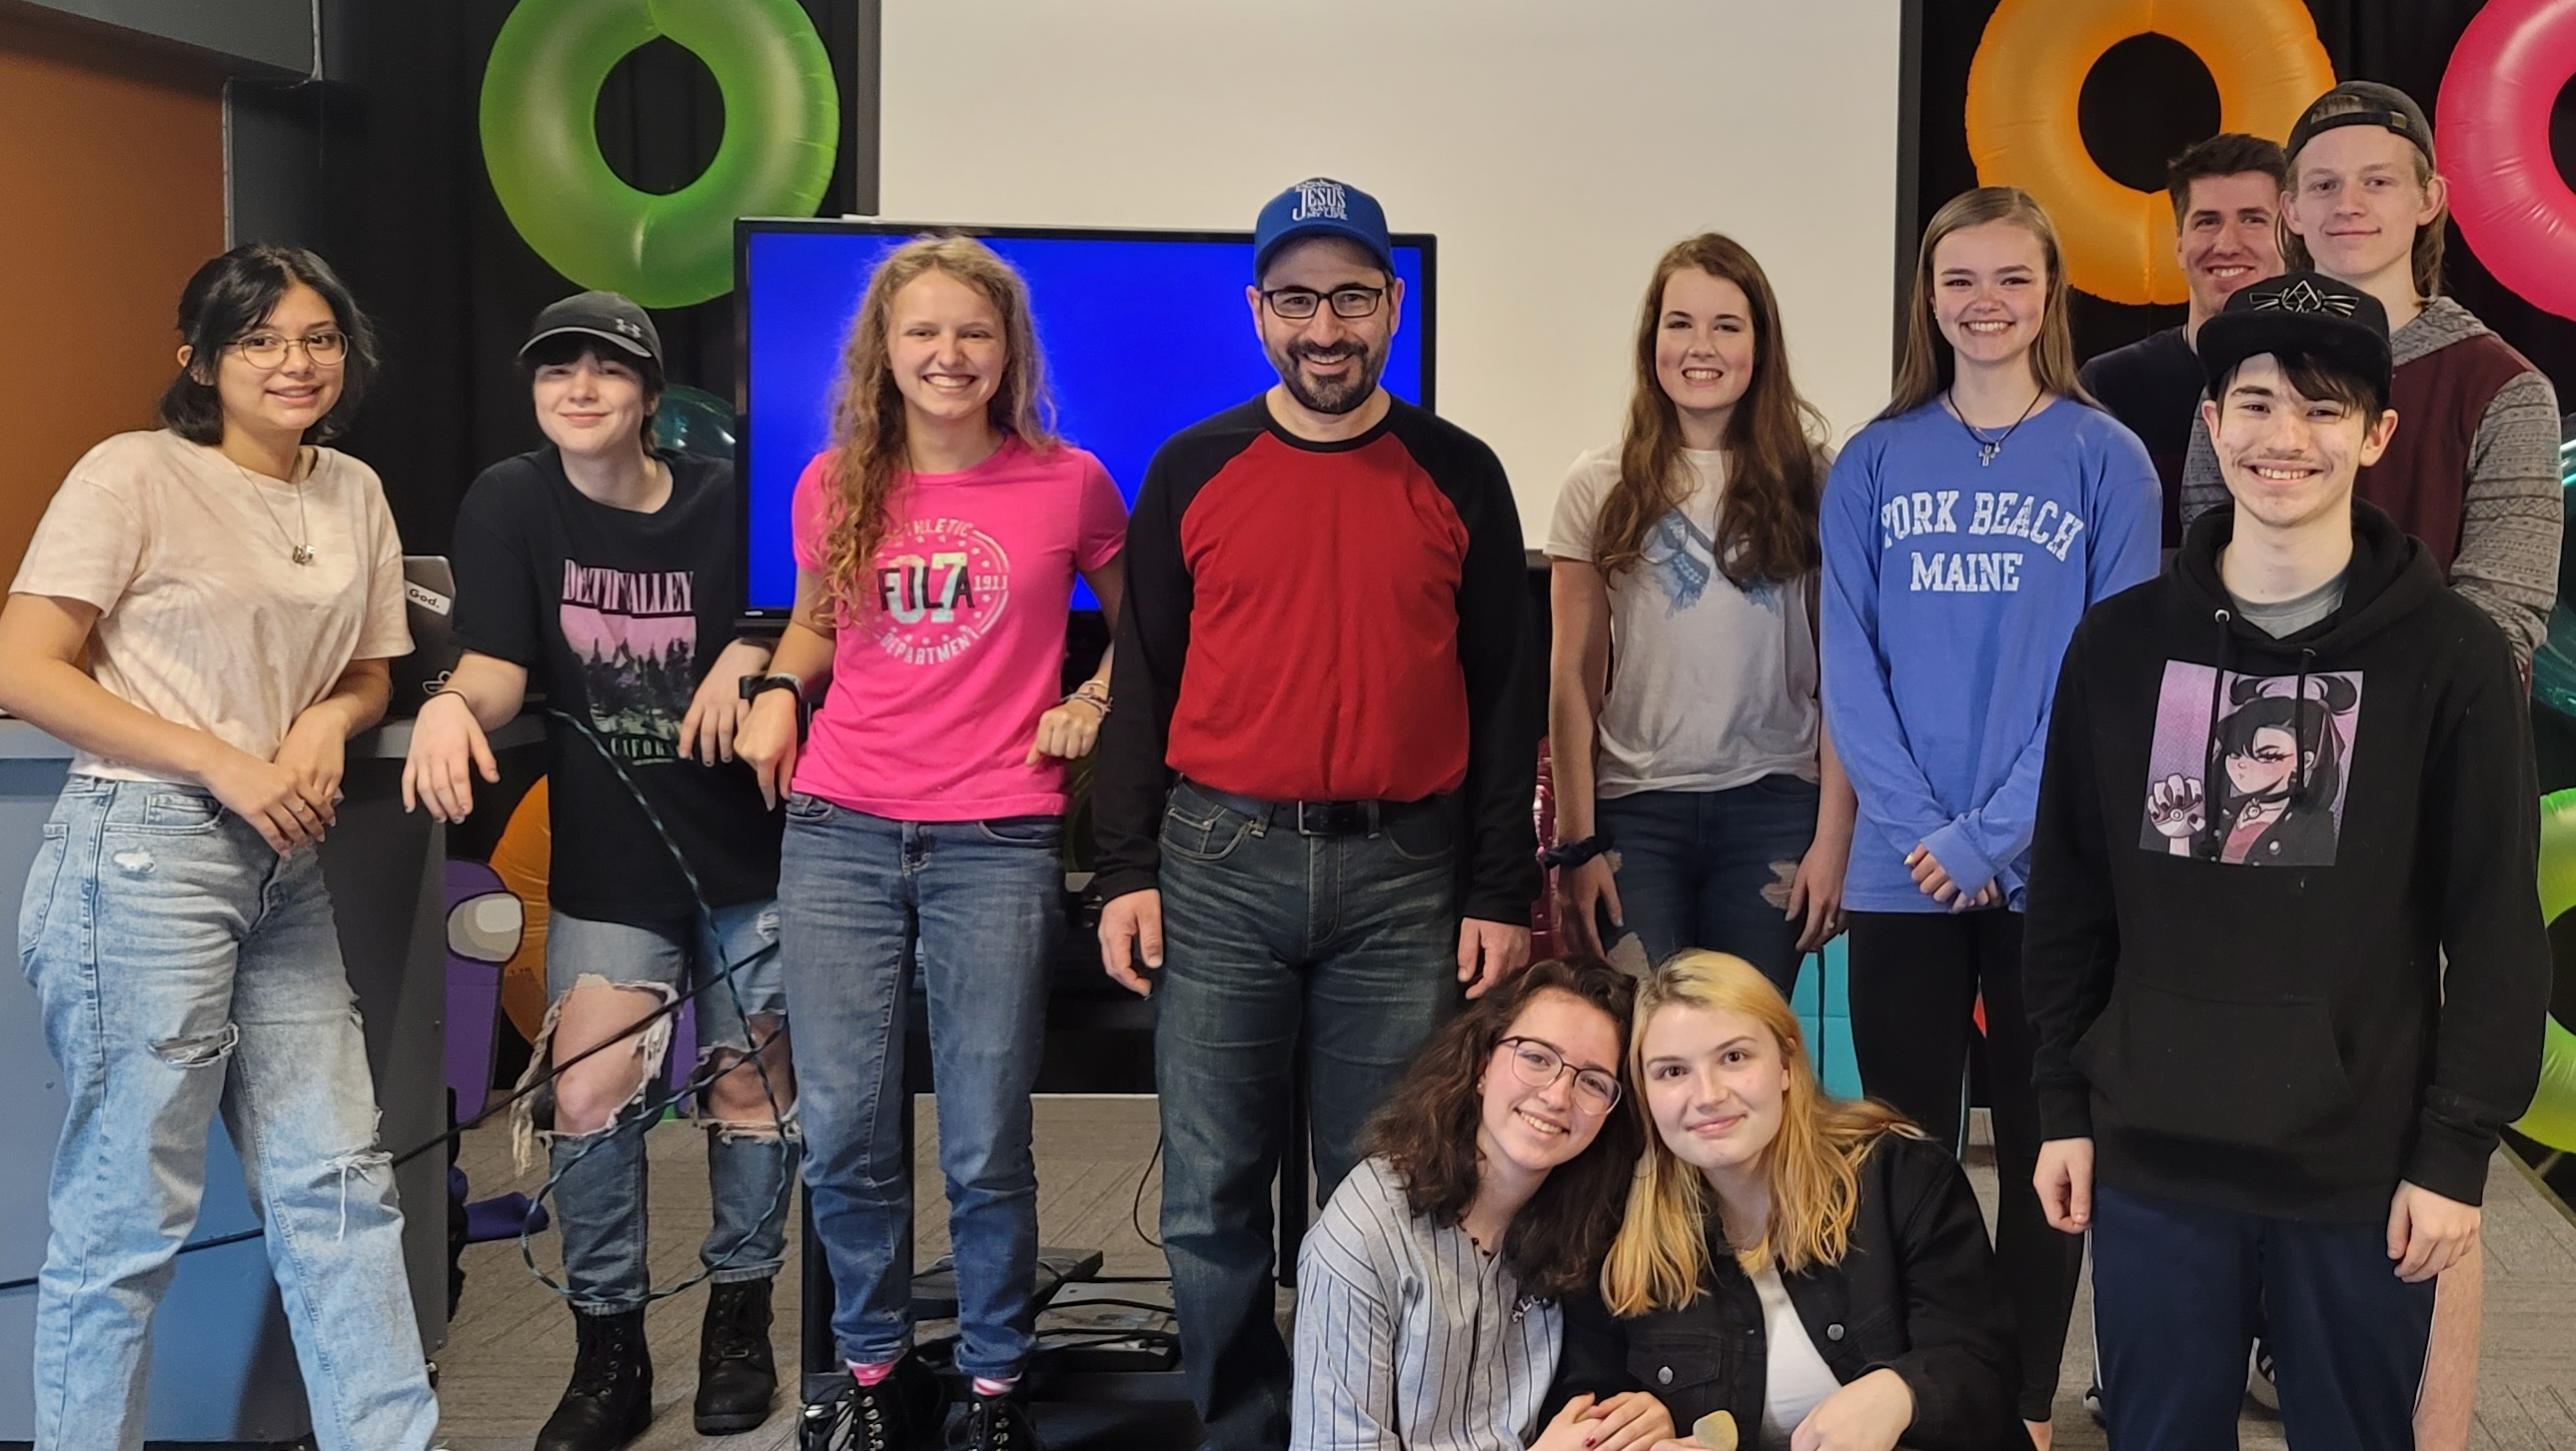 These are the terrific and smart and caring Teens I had the pleasure to teach all term.